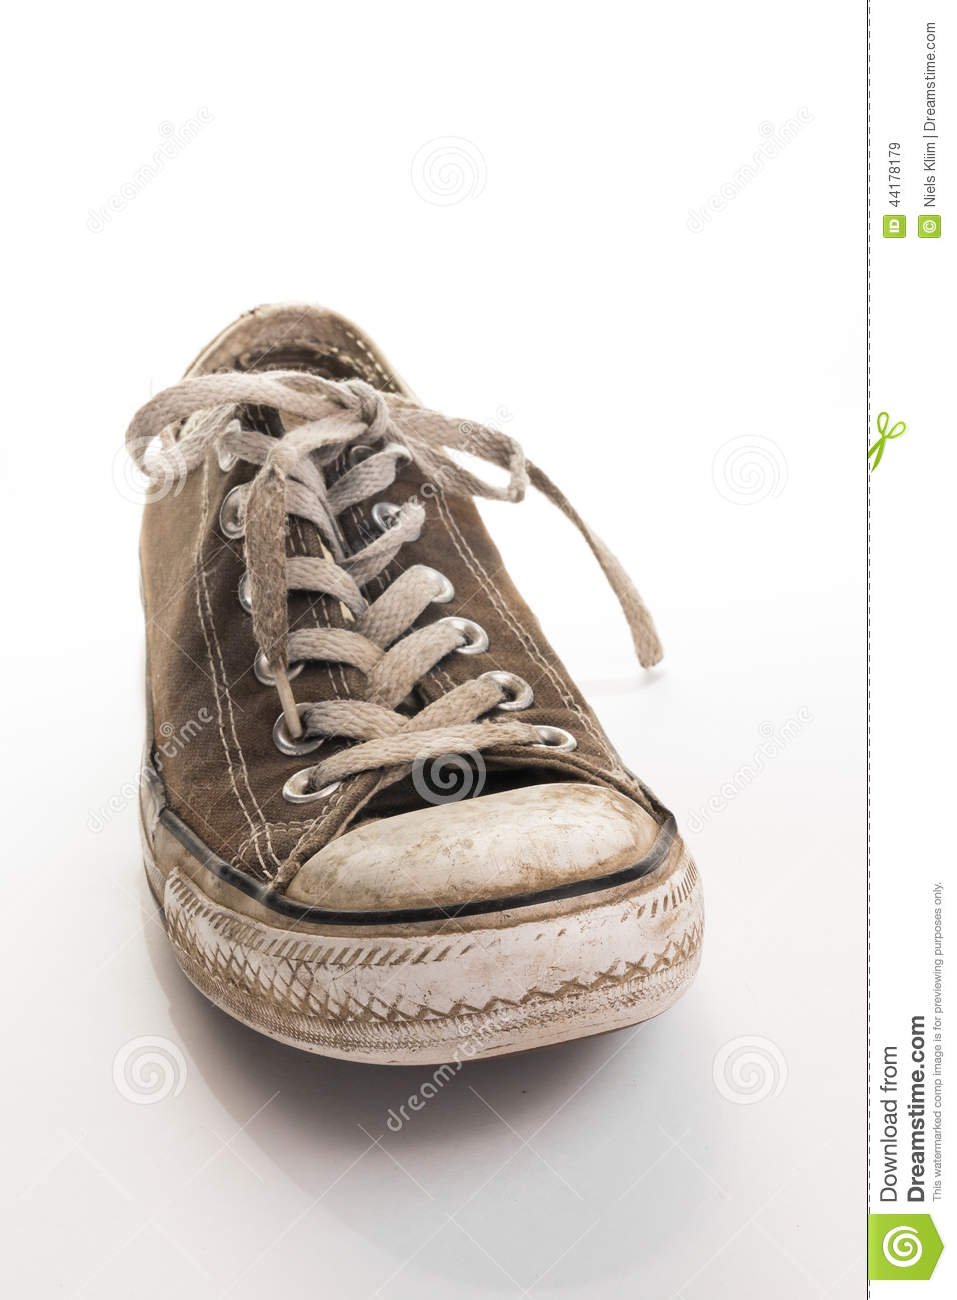 how to clean old dirty white shoes